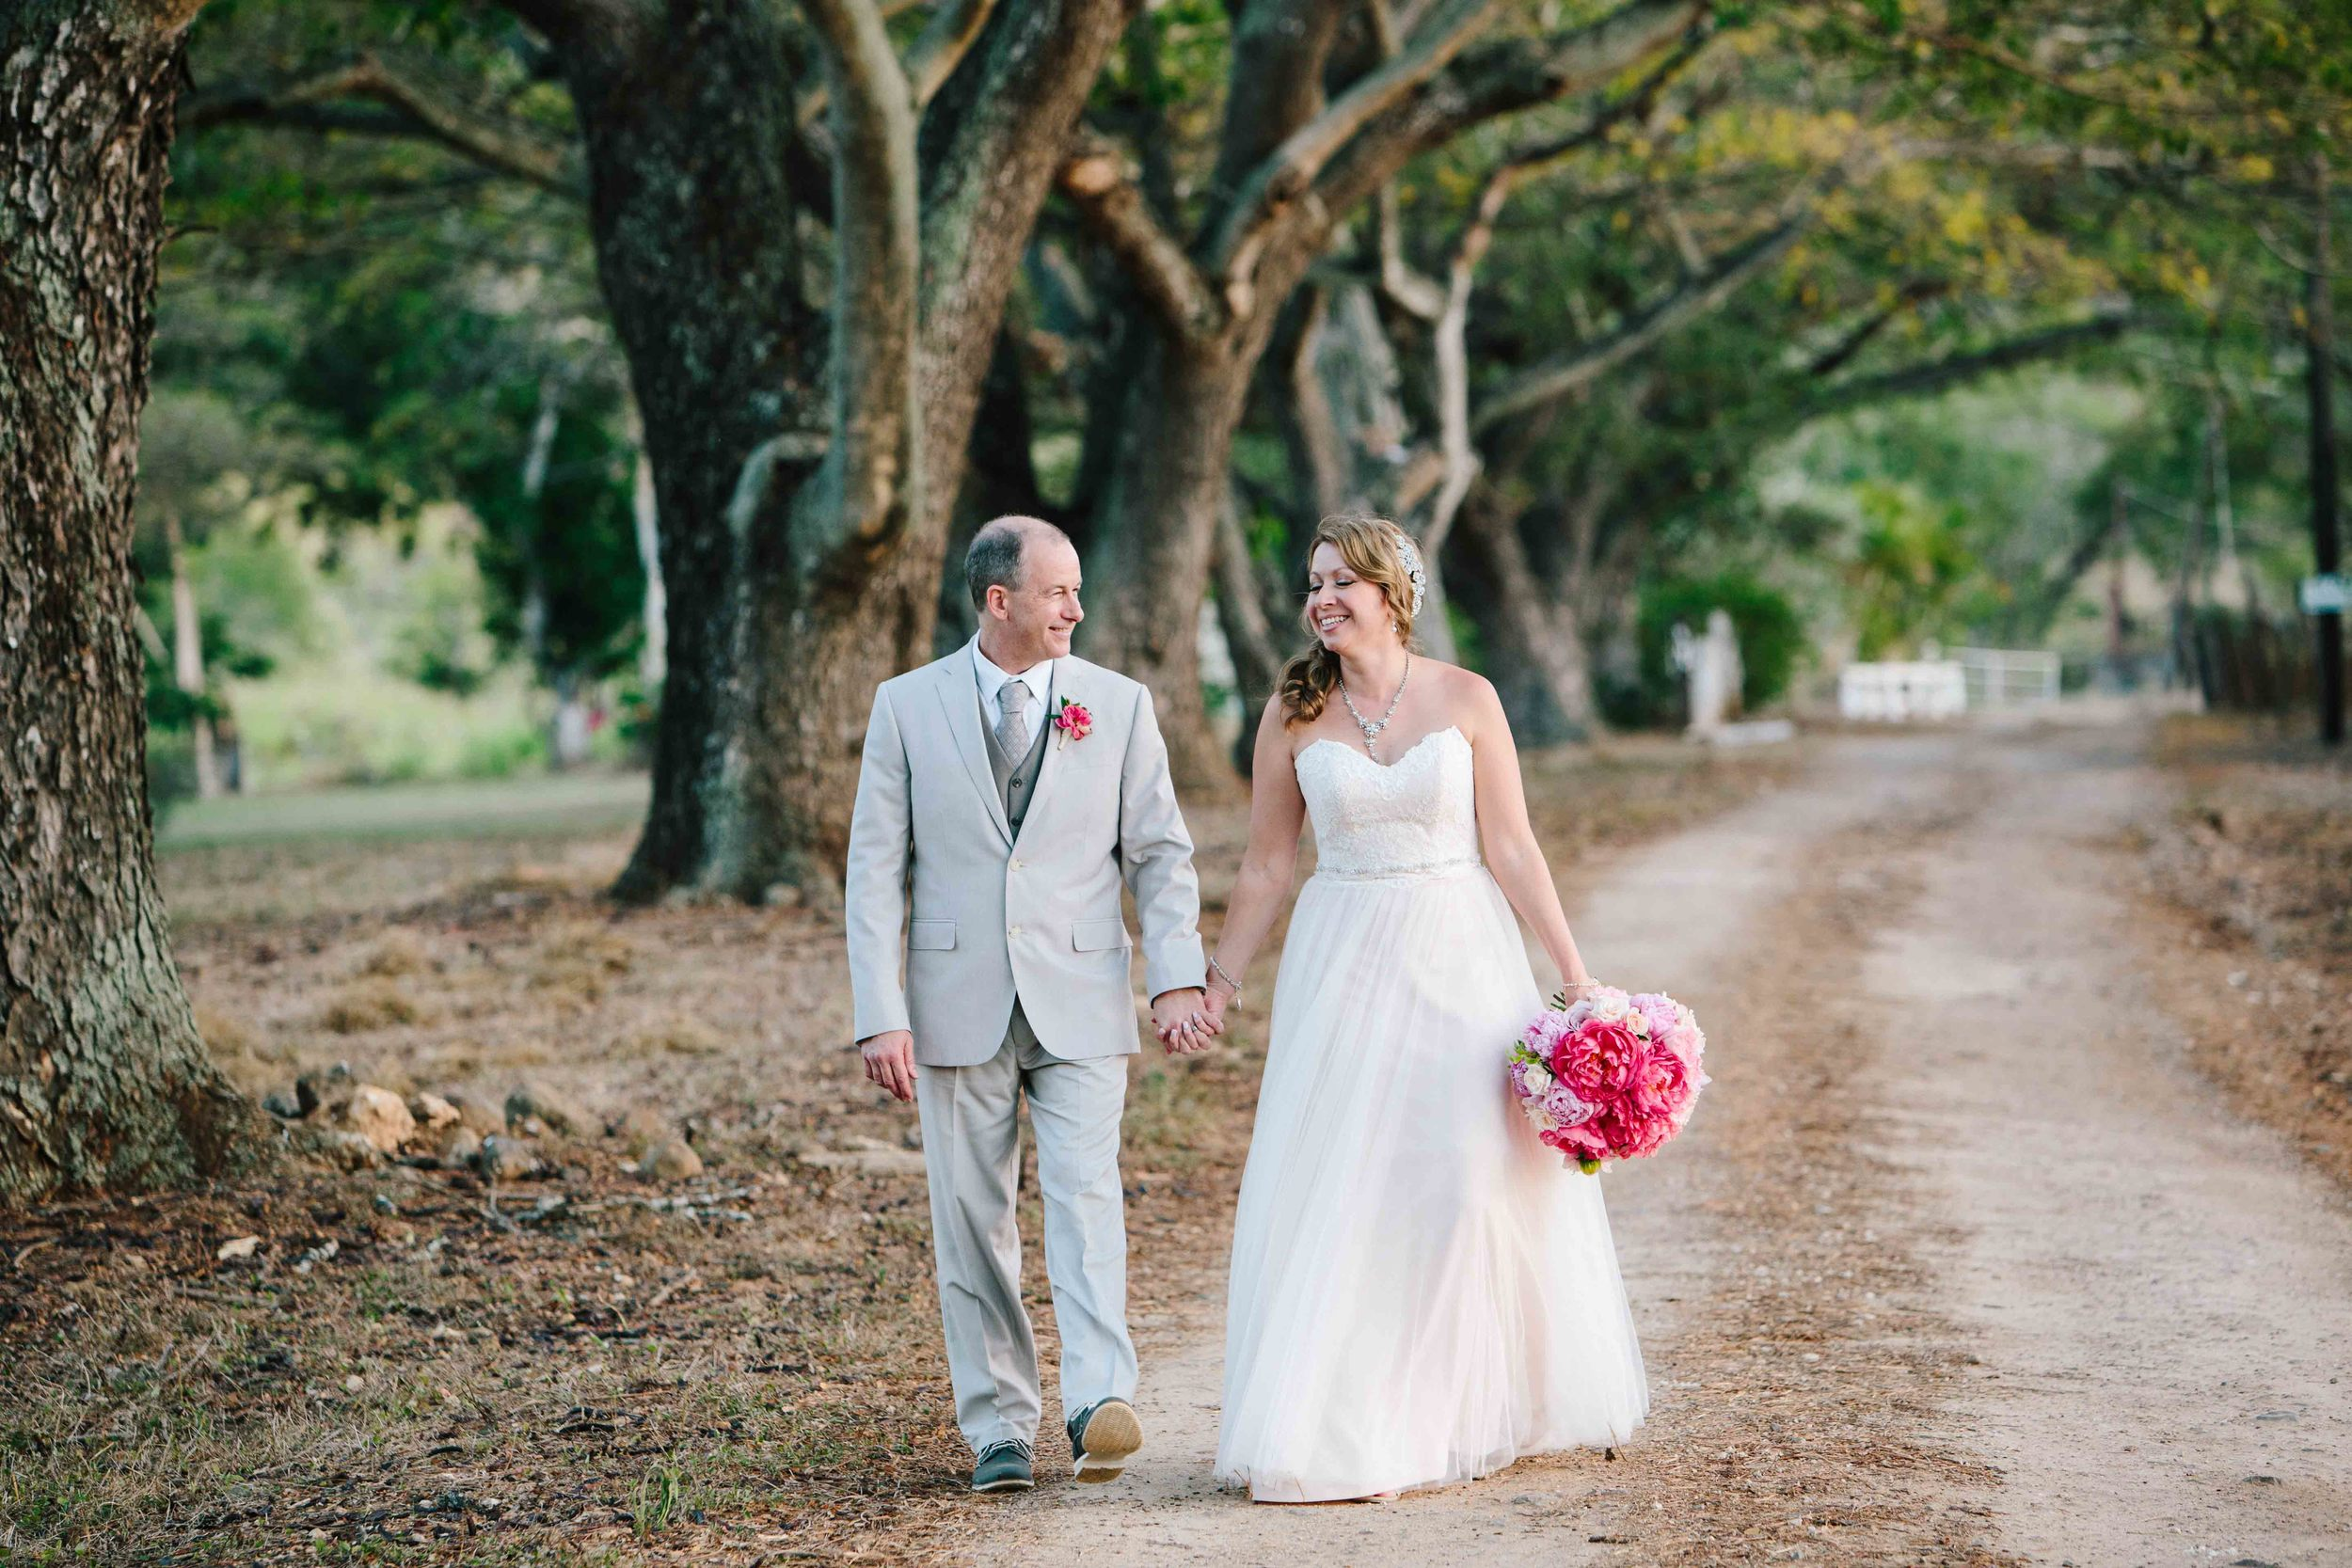 Dillingham Ranch Bride and Groom